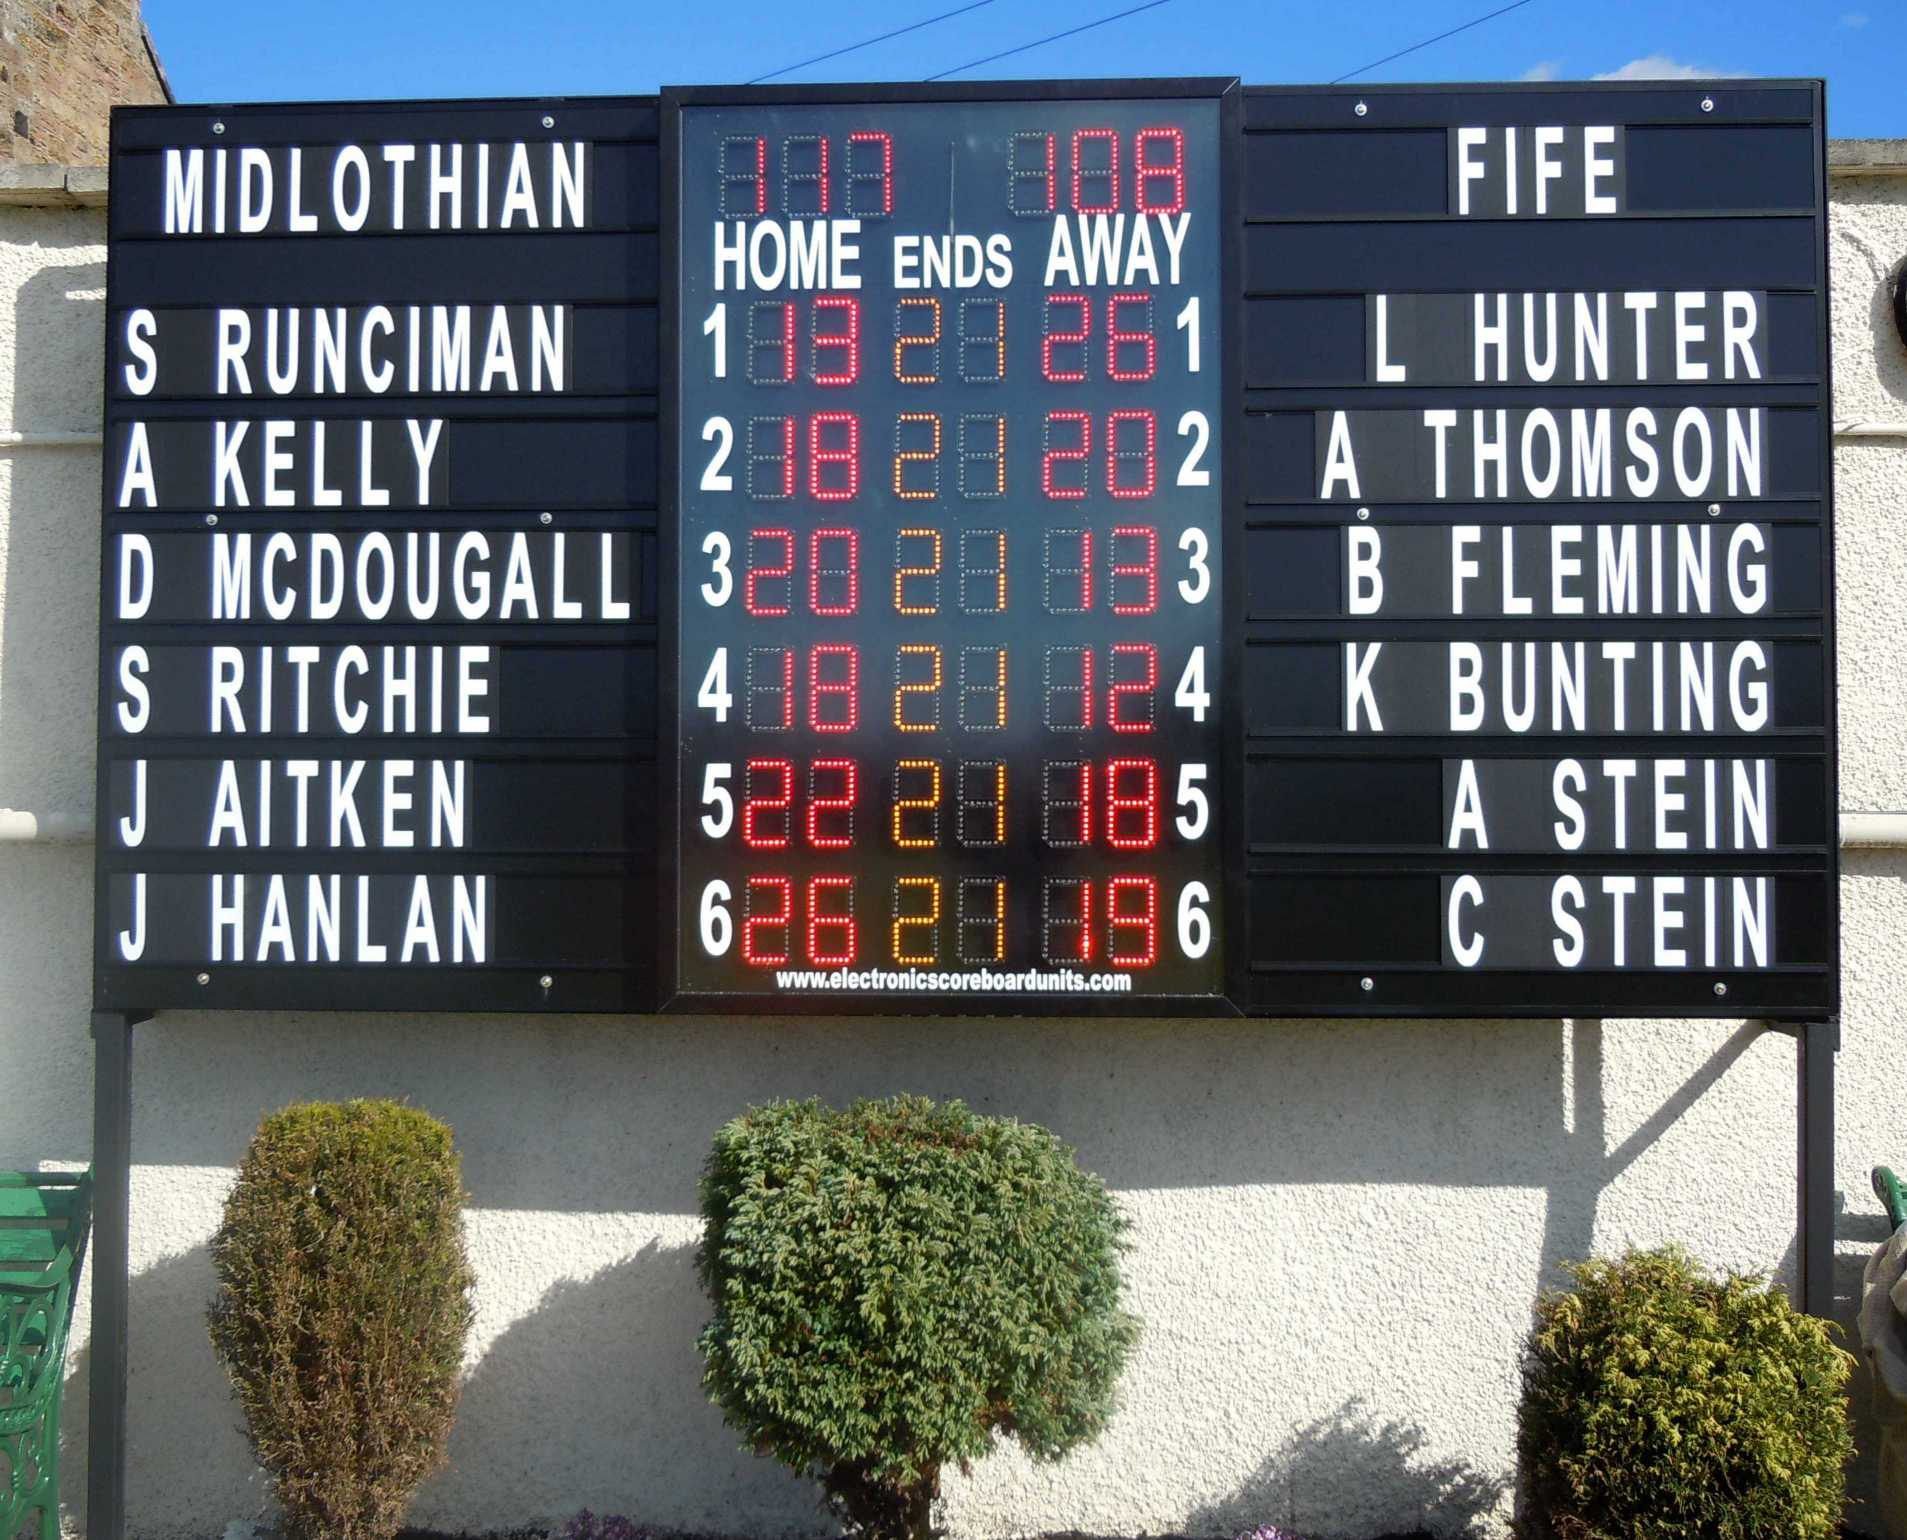 Large Outdoor Electronic Bowls scoreboard